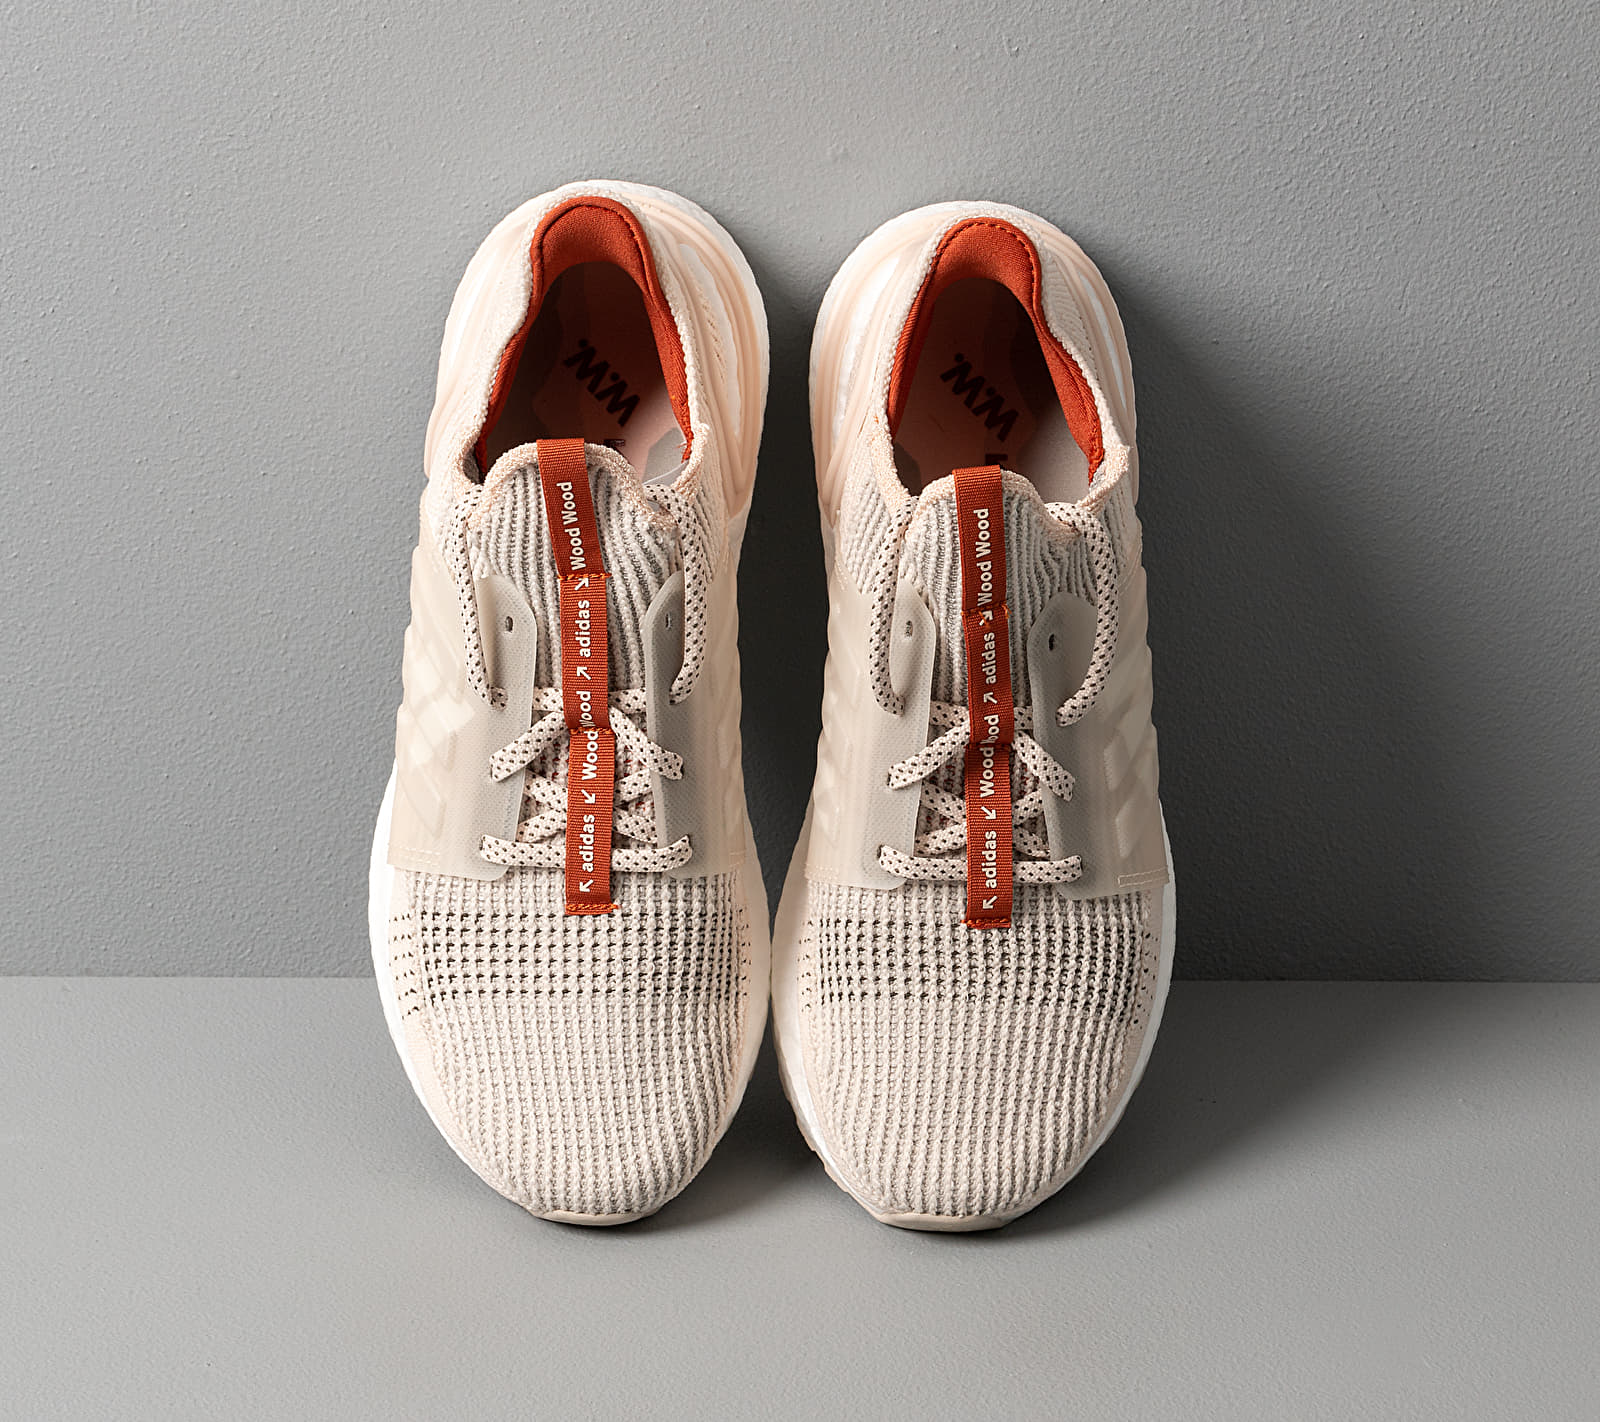 adidas x Wood Wood UltraBOOST 19 Linen/ Fox Red/ Clear Brown